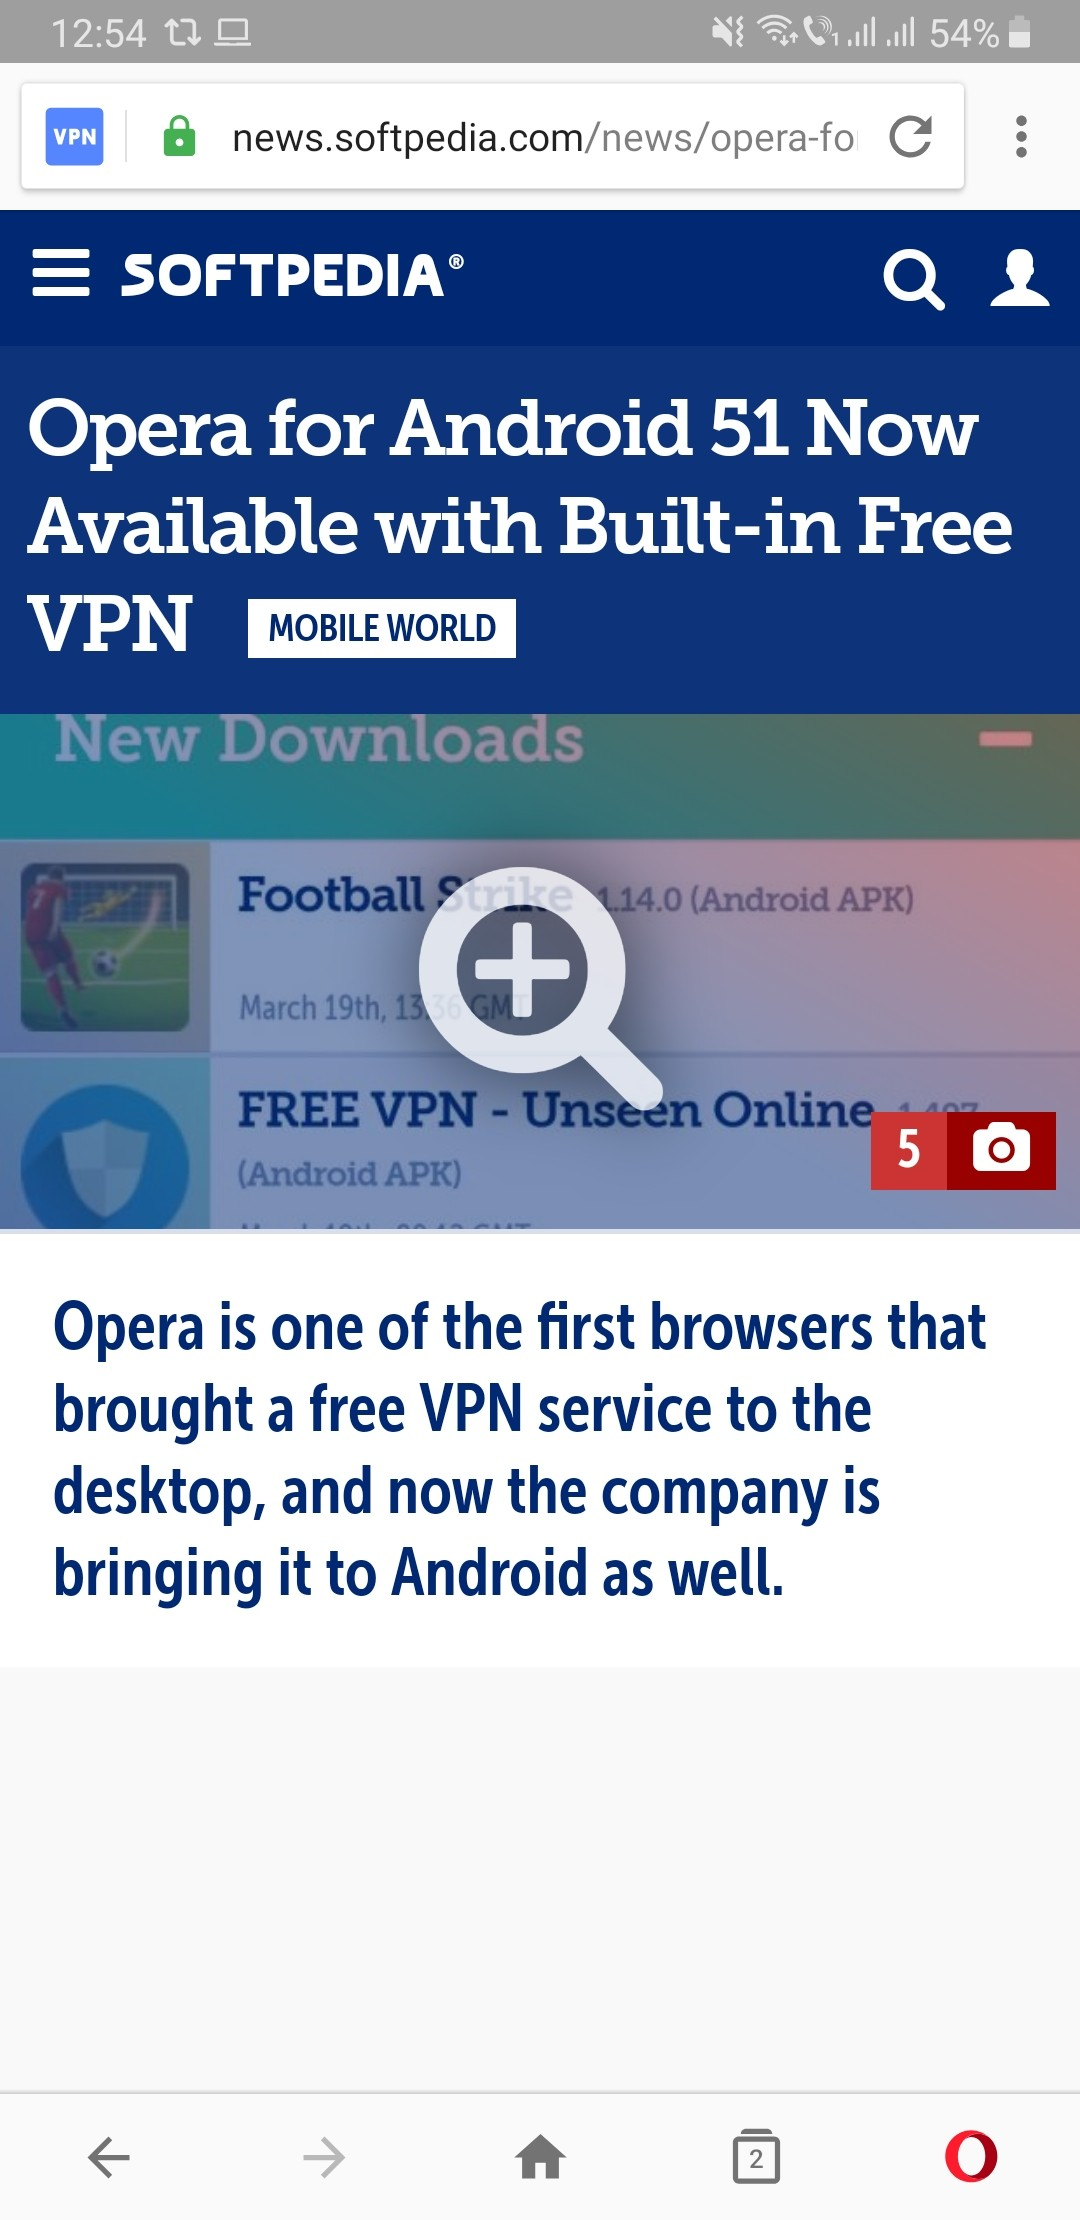 Hands-On with the Free VPN Feature in Opera for Android 51